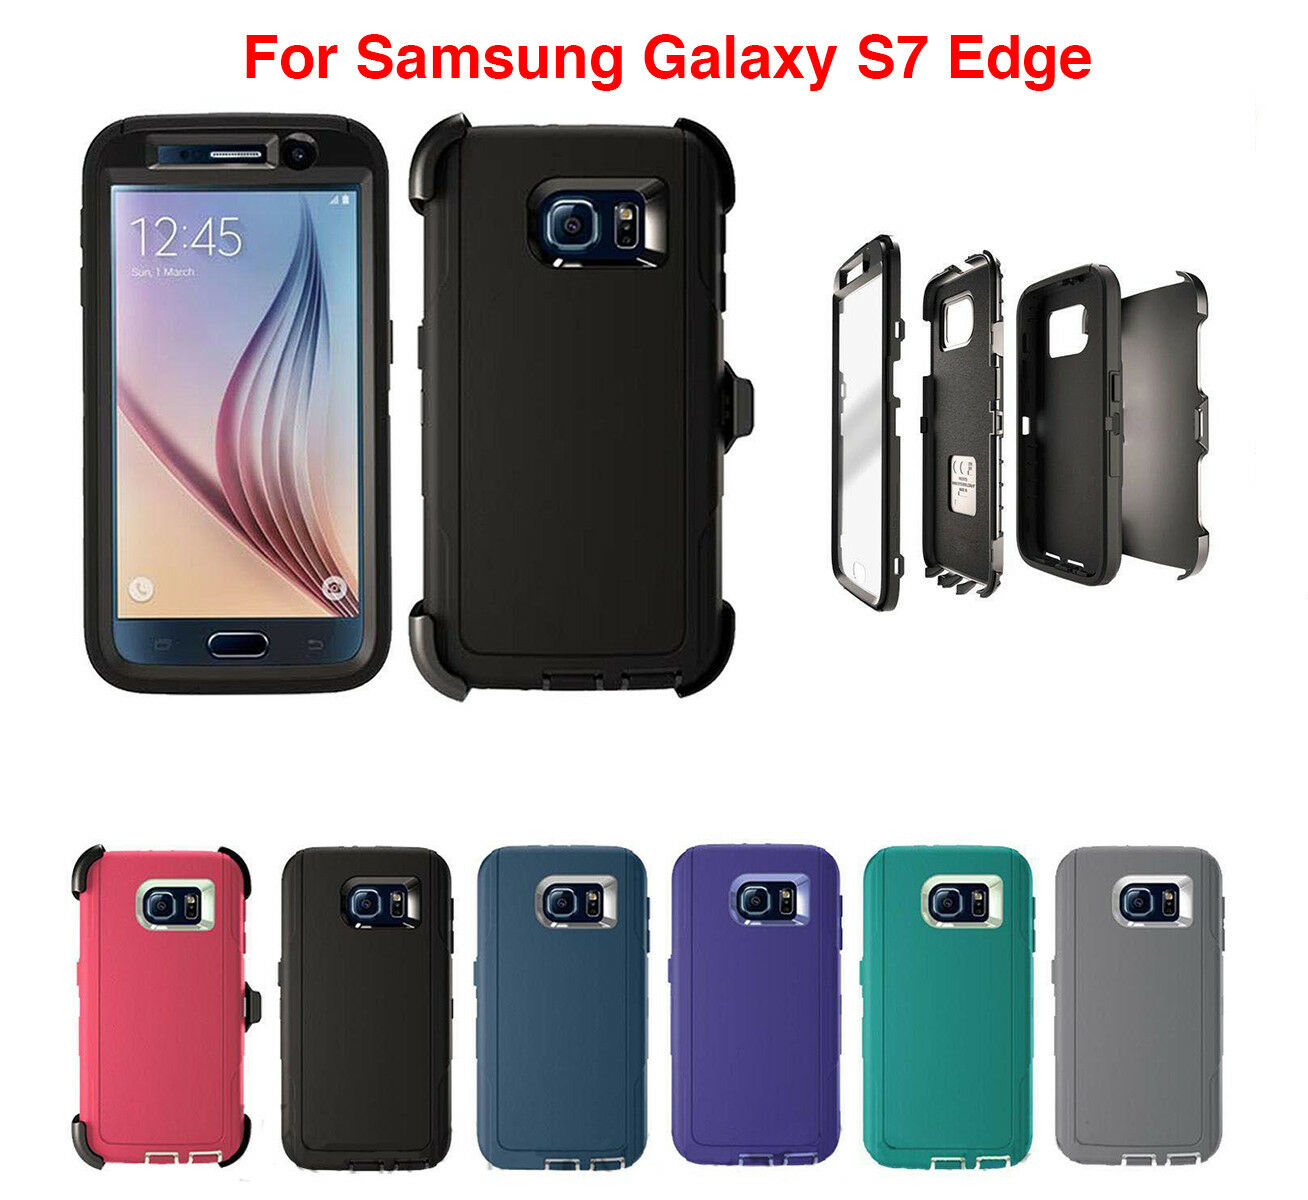 promo code 031f7 a6128 Details about For Samsung Galaxy S7 Edge Case Cover With (Belt Clip Fits  Otterbox Defender)